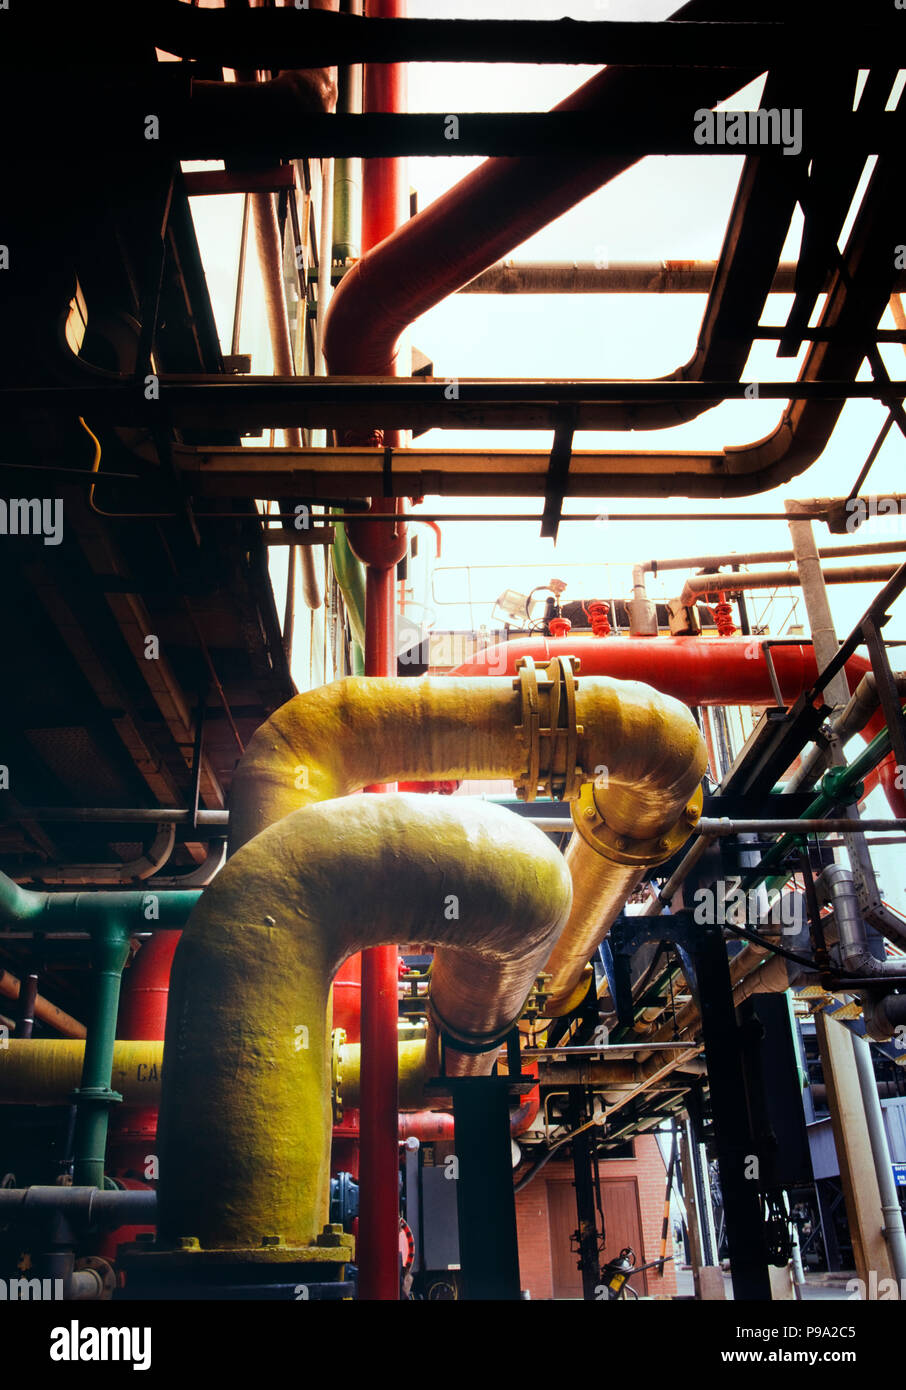 Industrial production of chlorine - Stock Image